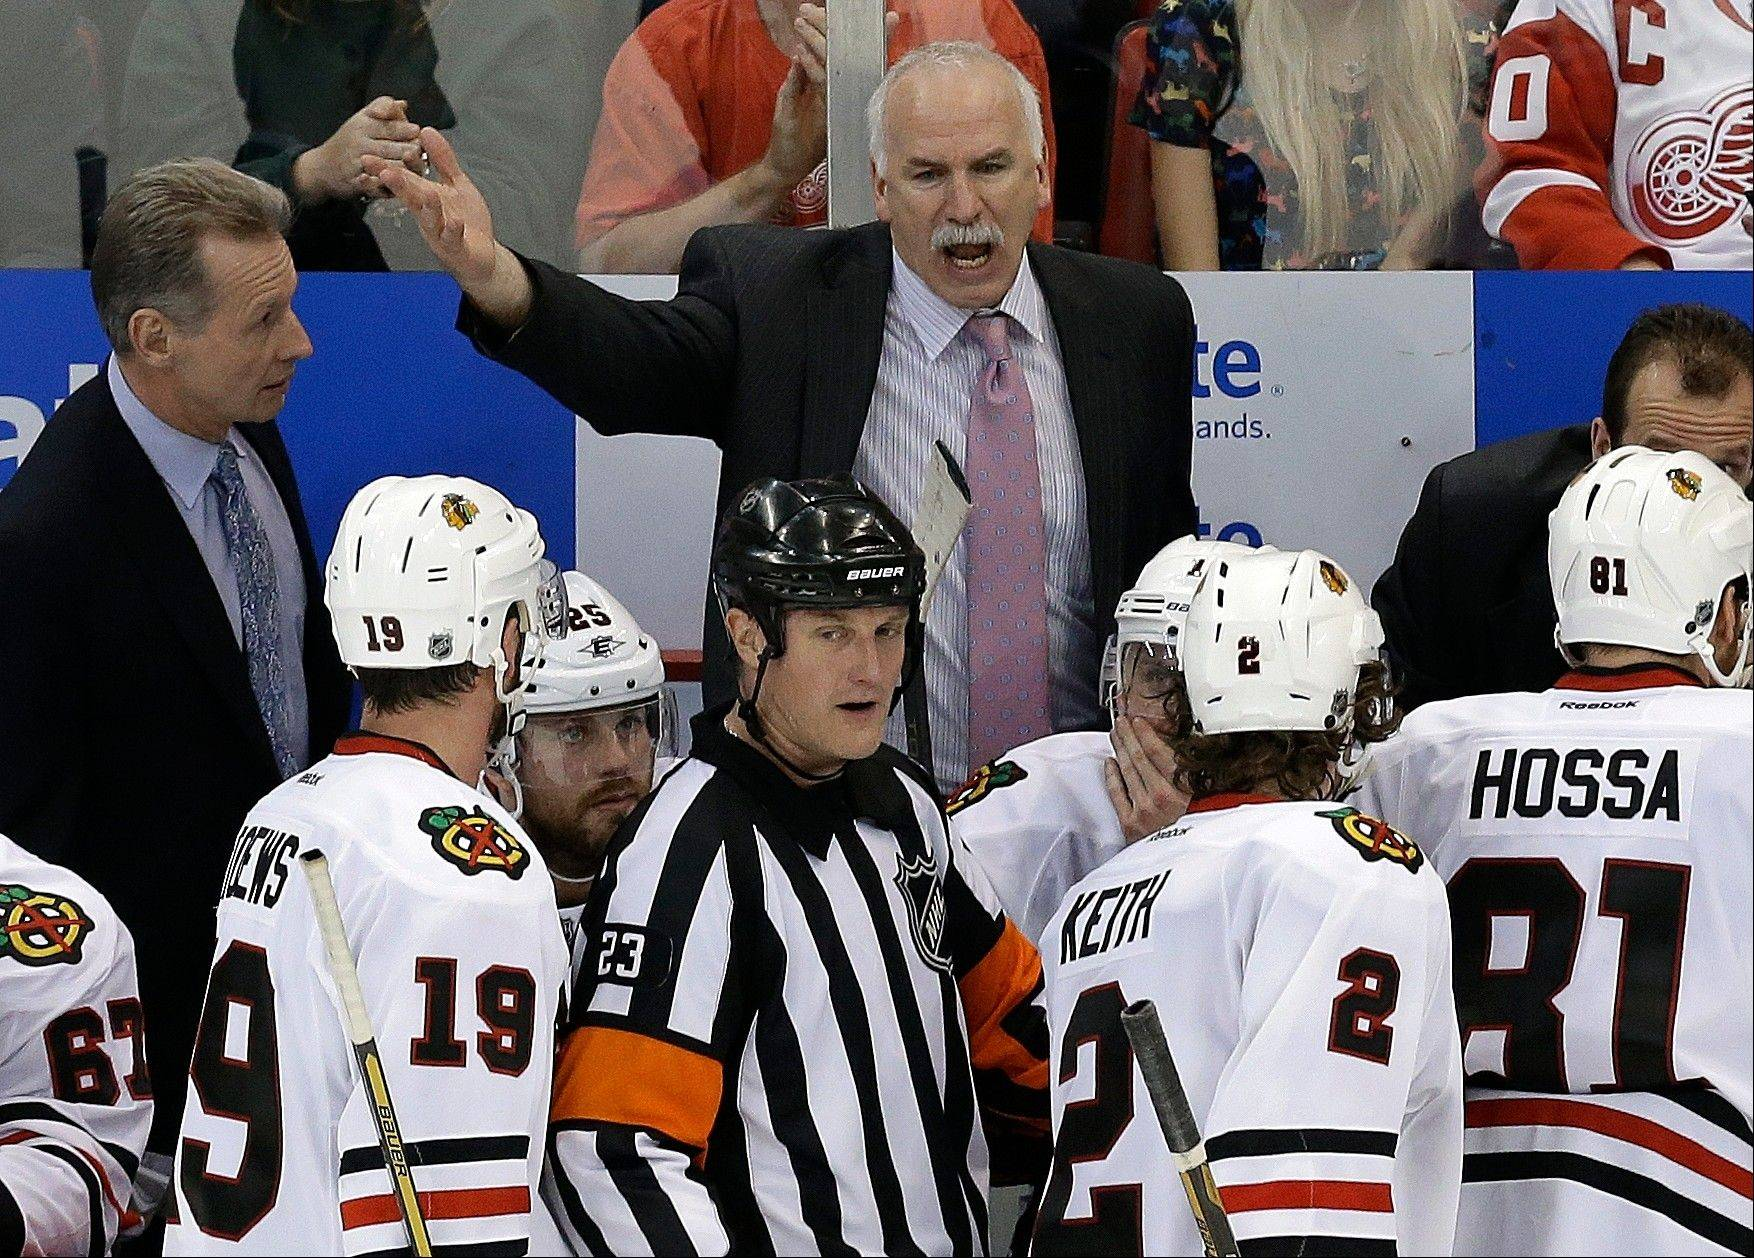 Blackhawks coach Joel Quenneville can only hope his team carries its play from Game 3 into Thursday's crucial Game 4 at Detroit.